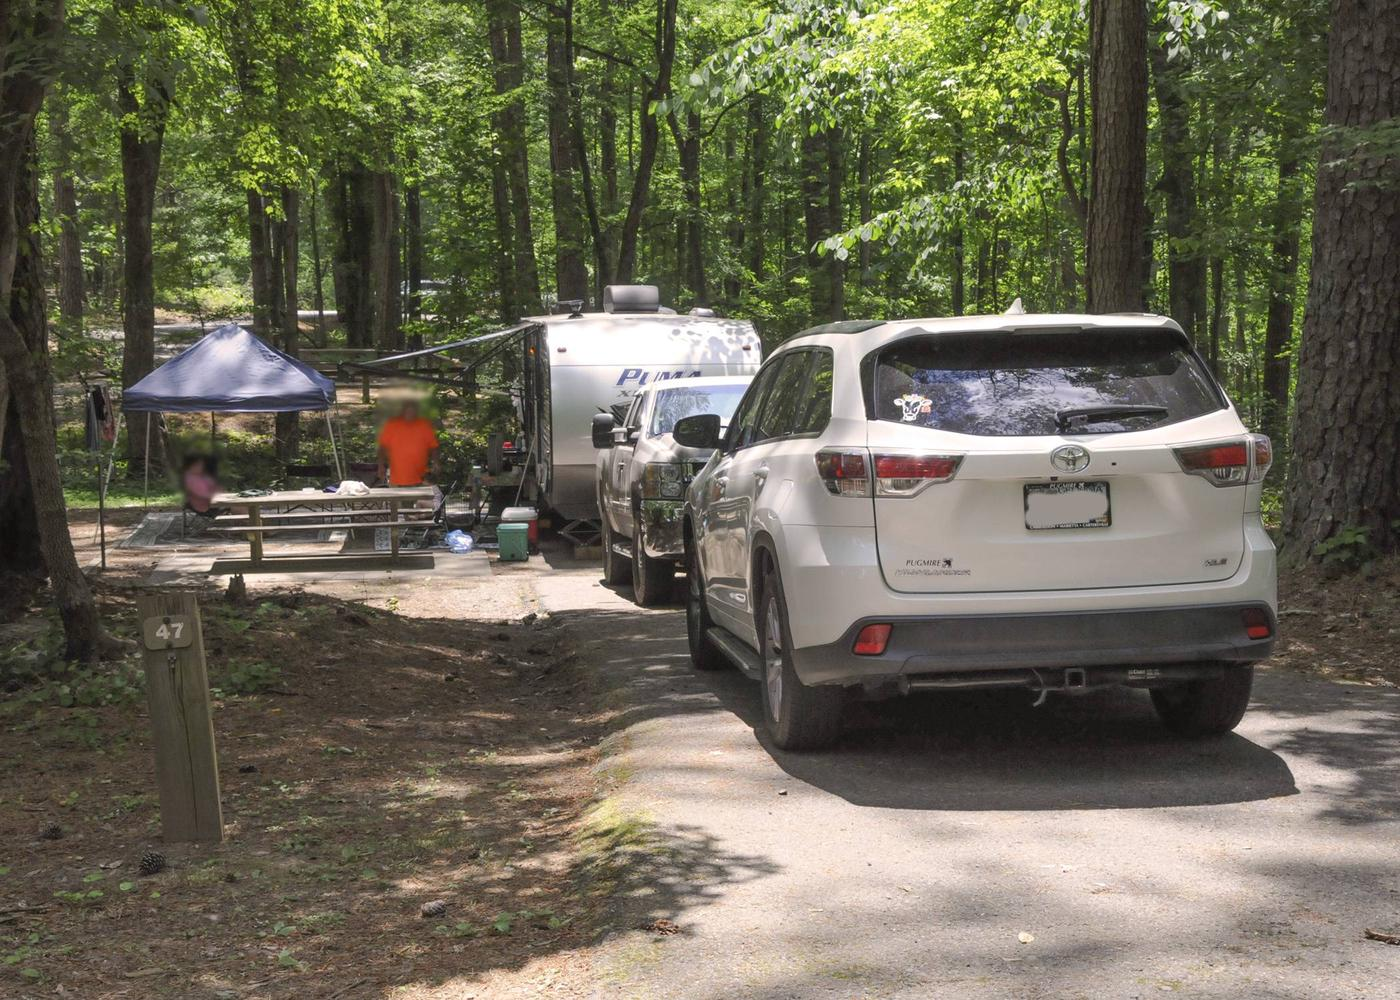 Driveway slope, awning-side clearance.McKaskey Creek Campground, campsite 47